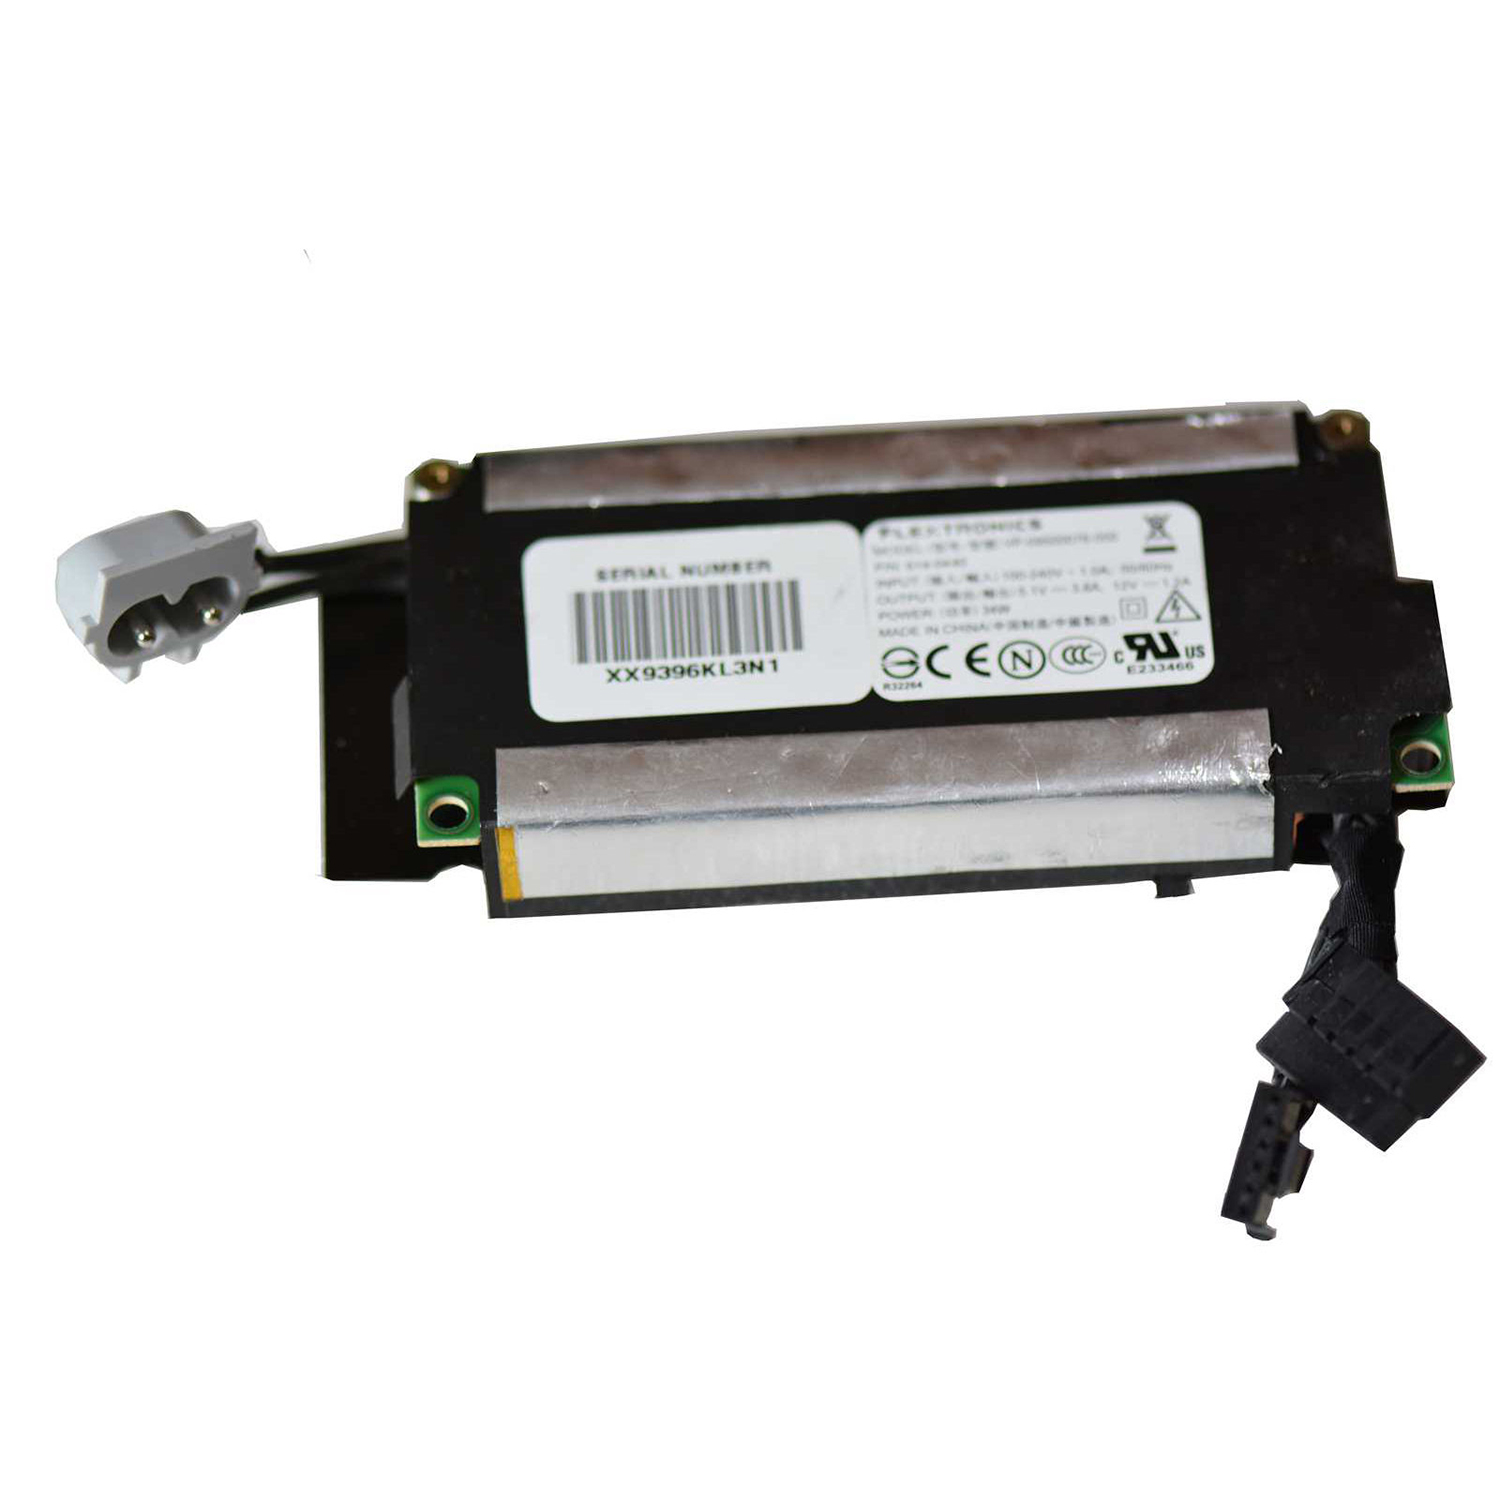 Internal Power Supply Charge Board For Apple Time Capsule A1254 A1302 614-0440